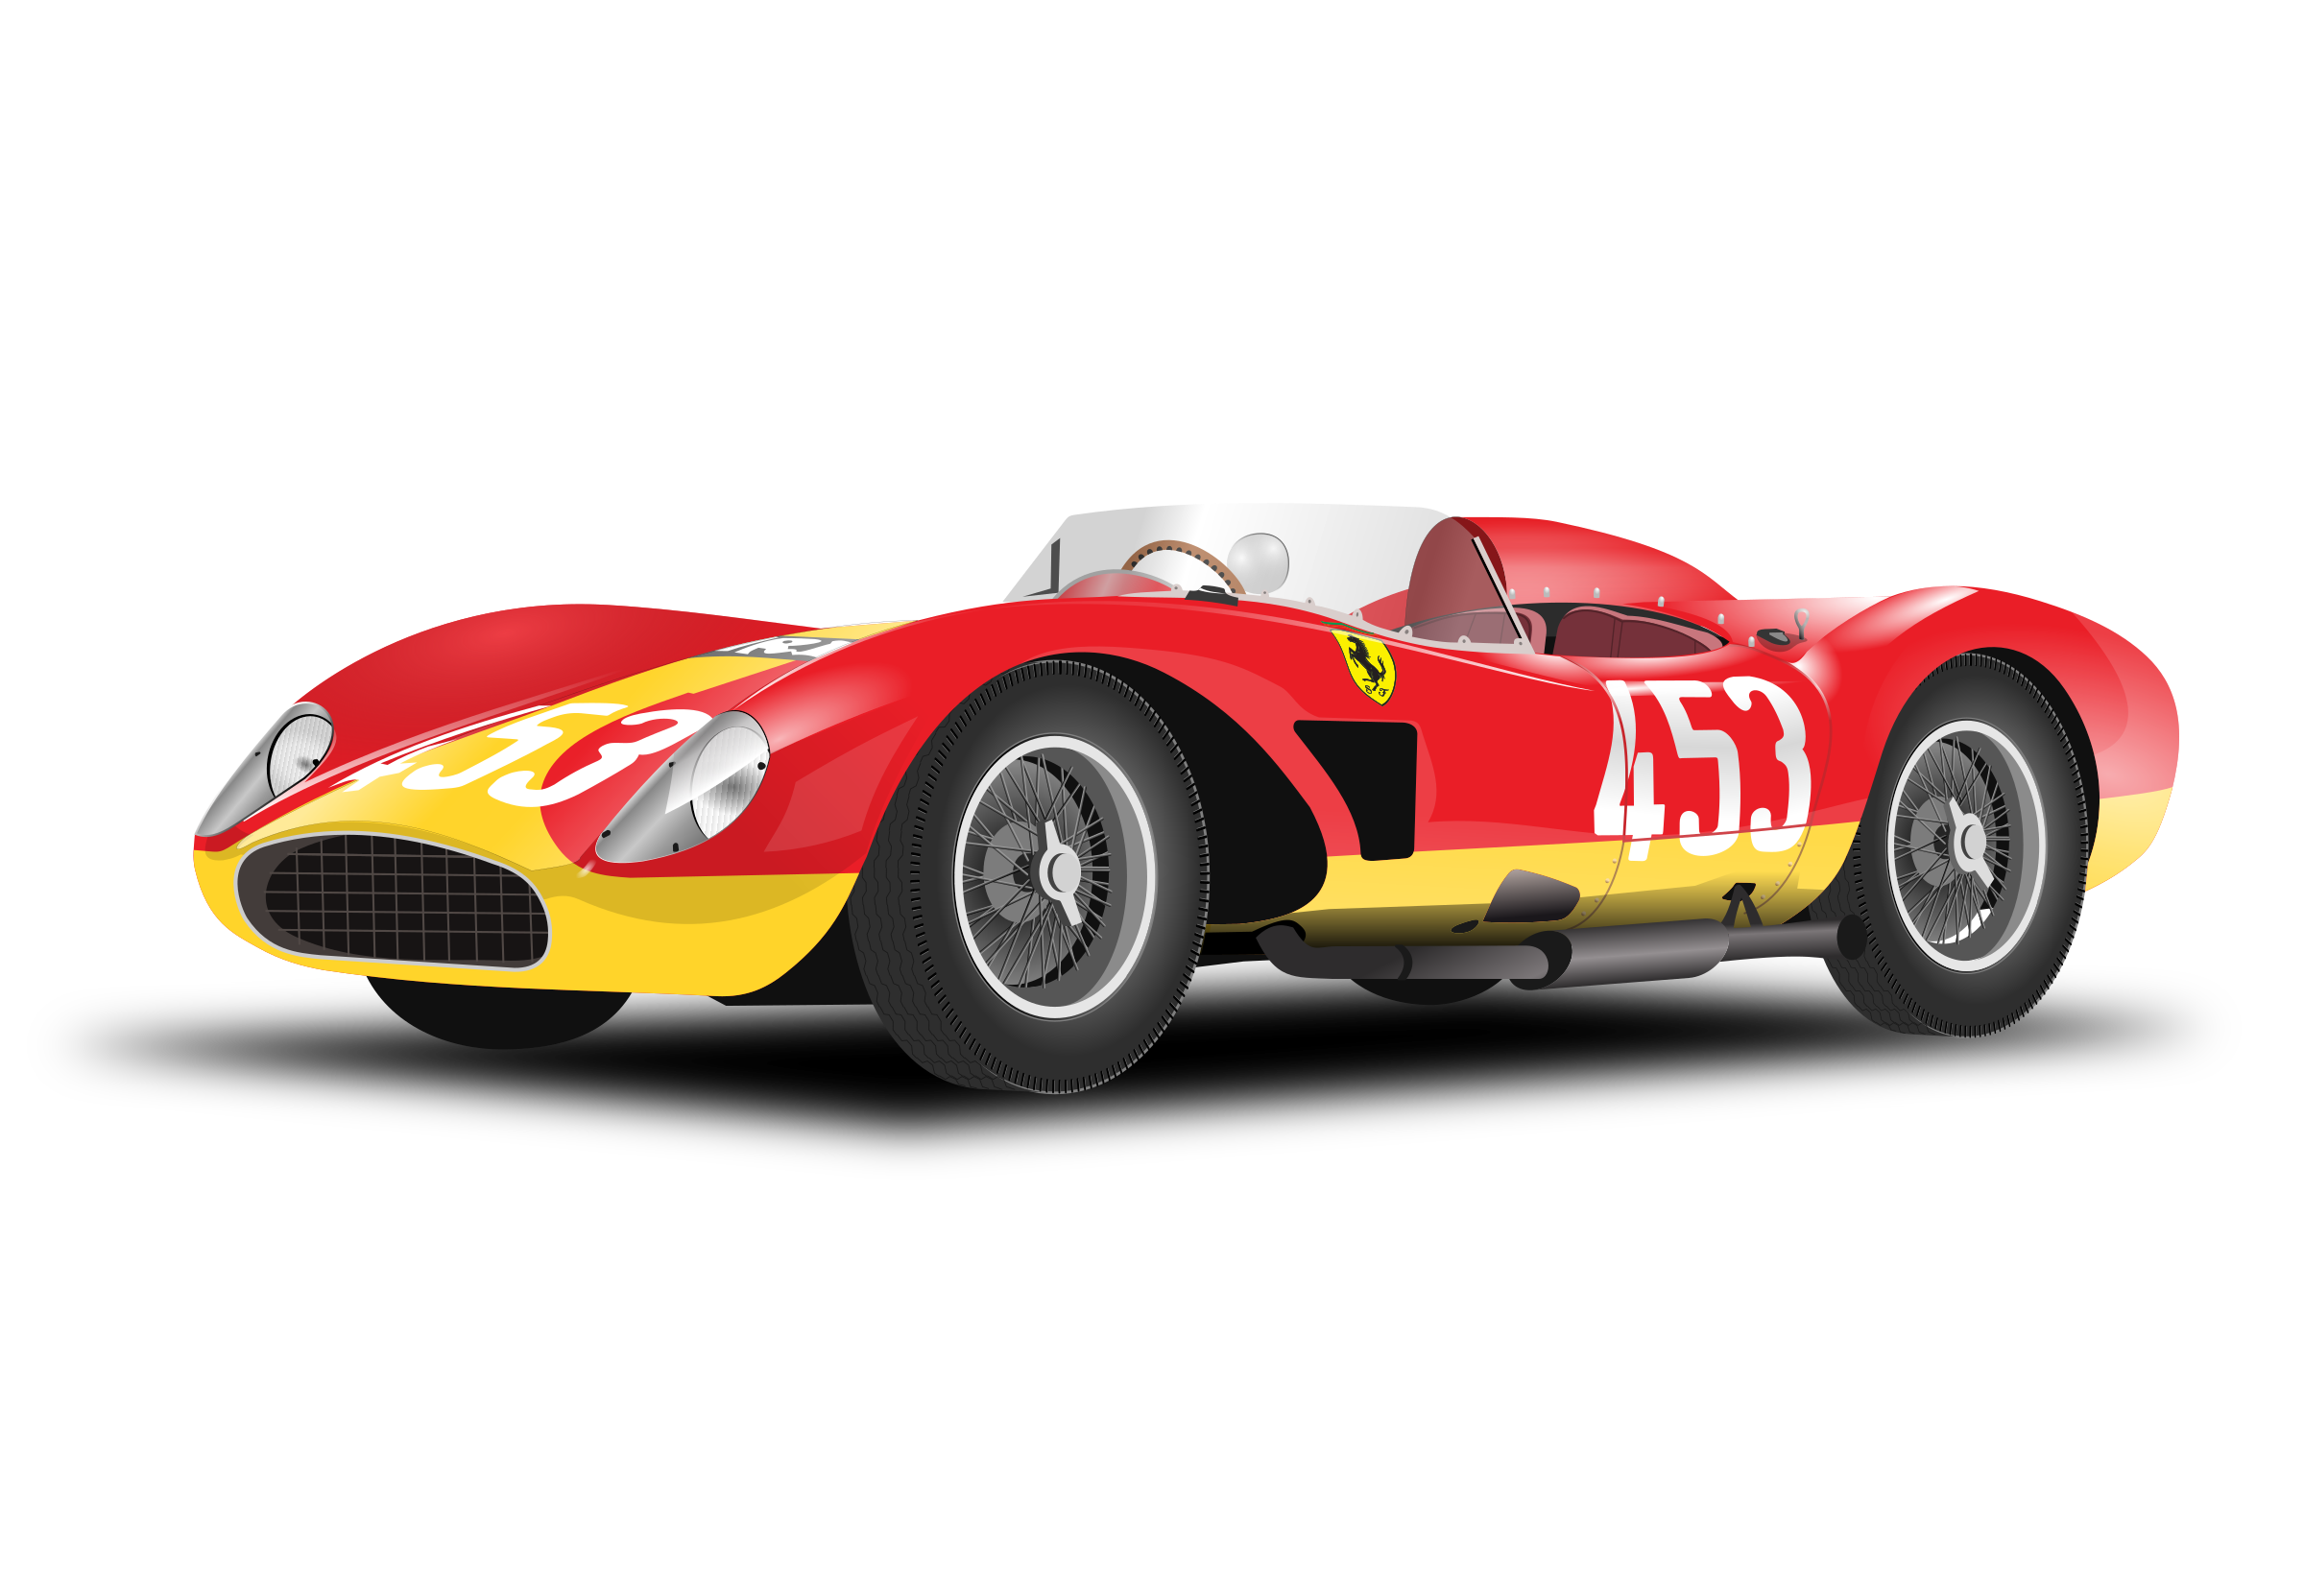 Classic car clipart graphic royalty free stock Ferrari Clipart race car - Free Clipart on Dumielauxepices.net graphic royalty free stock